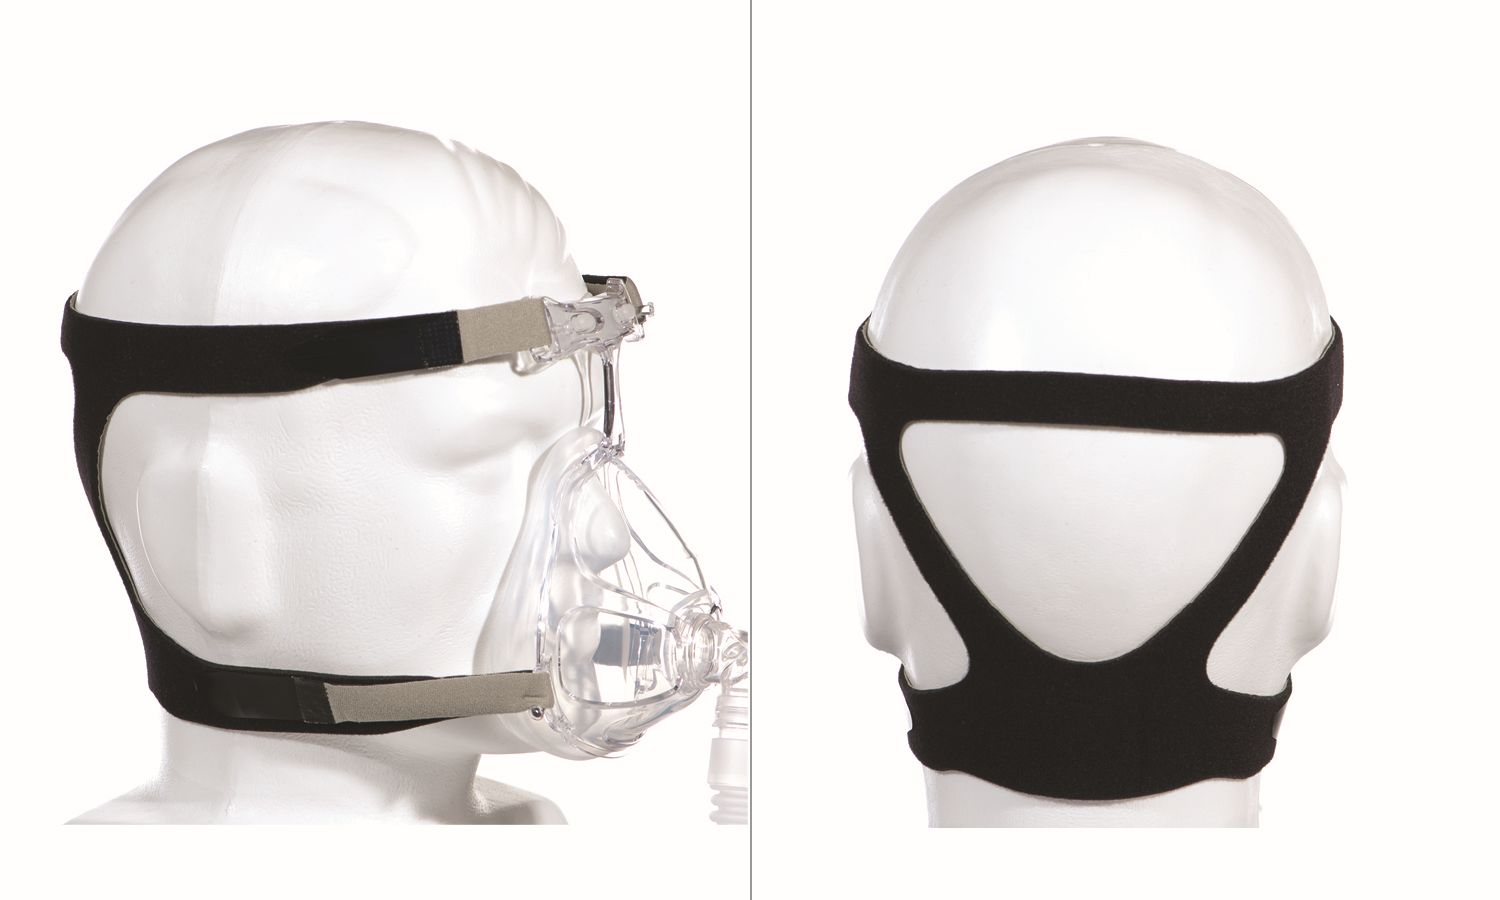 AG60674 Ultra Mirage Mask Headgear product photo